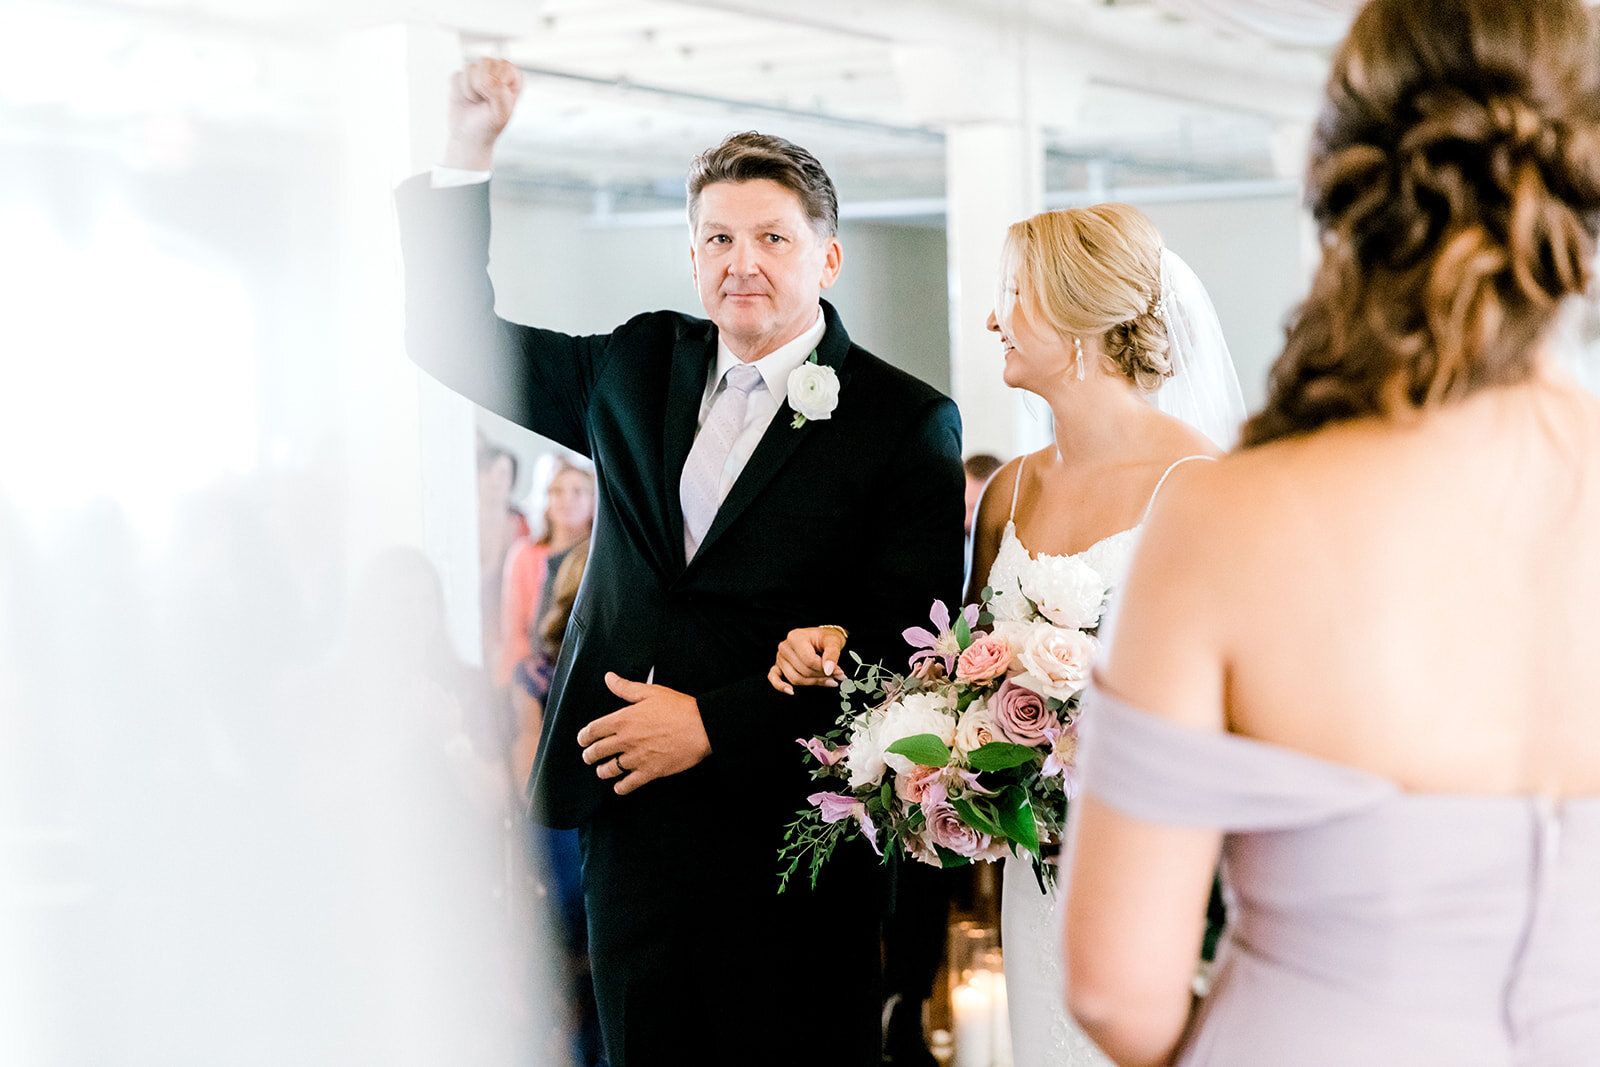 father giving the bride away.jpg